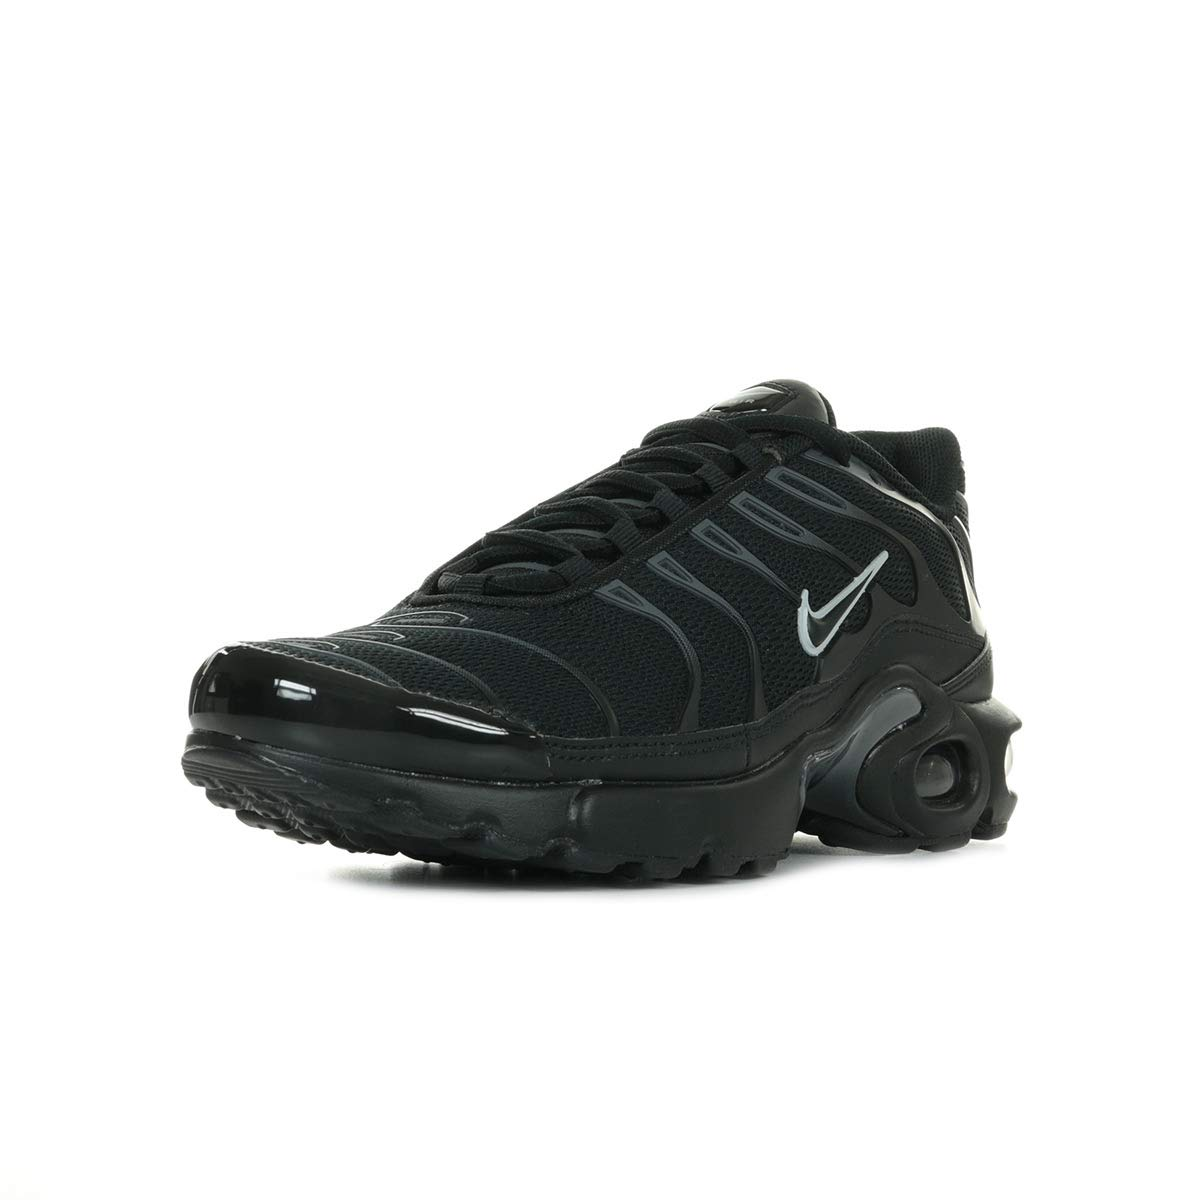 Nike Air Max Plus GS Tn Tuned 1 Trainers 655020 Sneakers scarpa (UK 4.5 us 5Y EU 37.5, Black Pure Platinum 053)